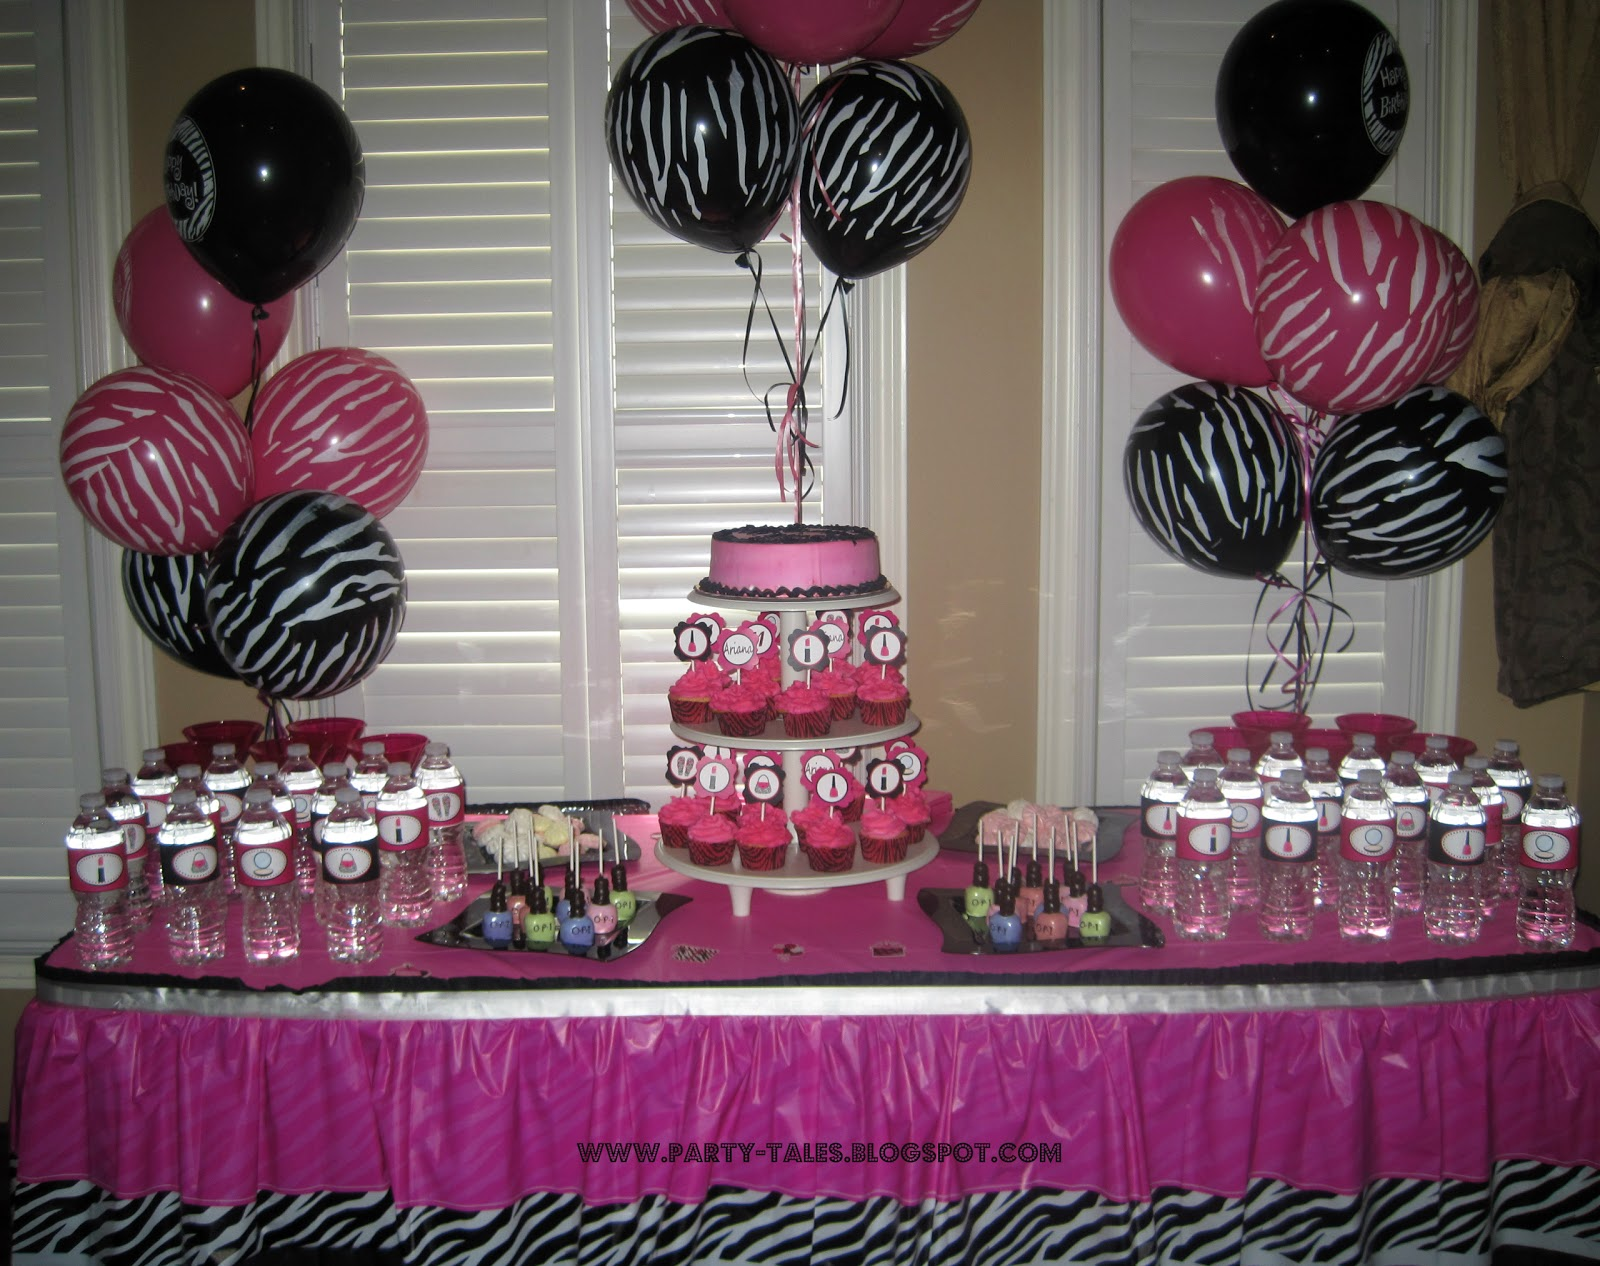 ... Zebra Print . We used the Zebra Print Party supplies from Birthday